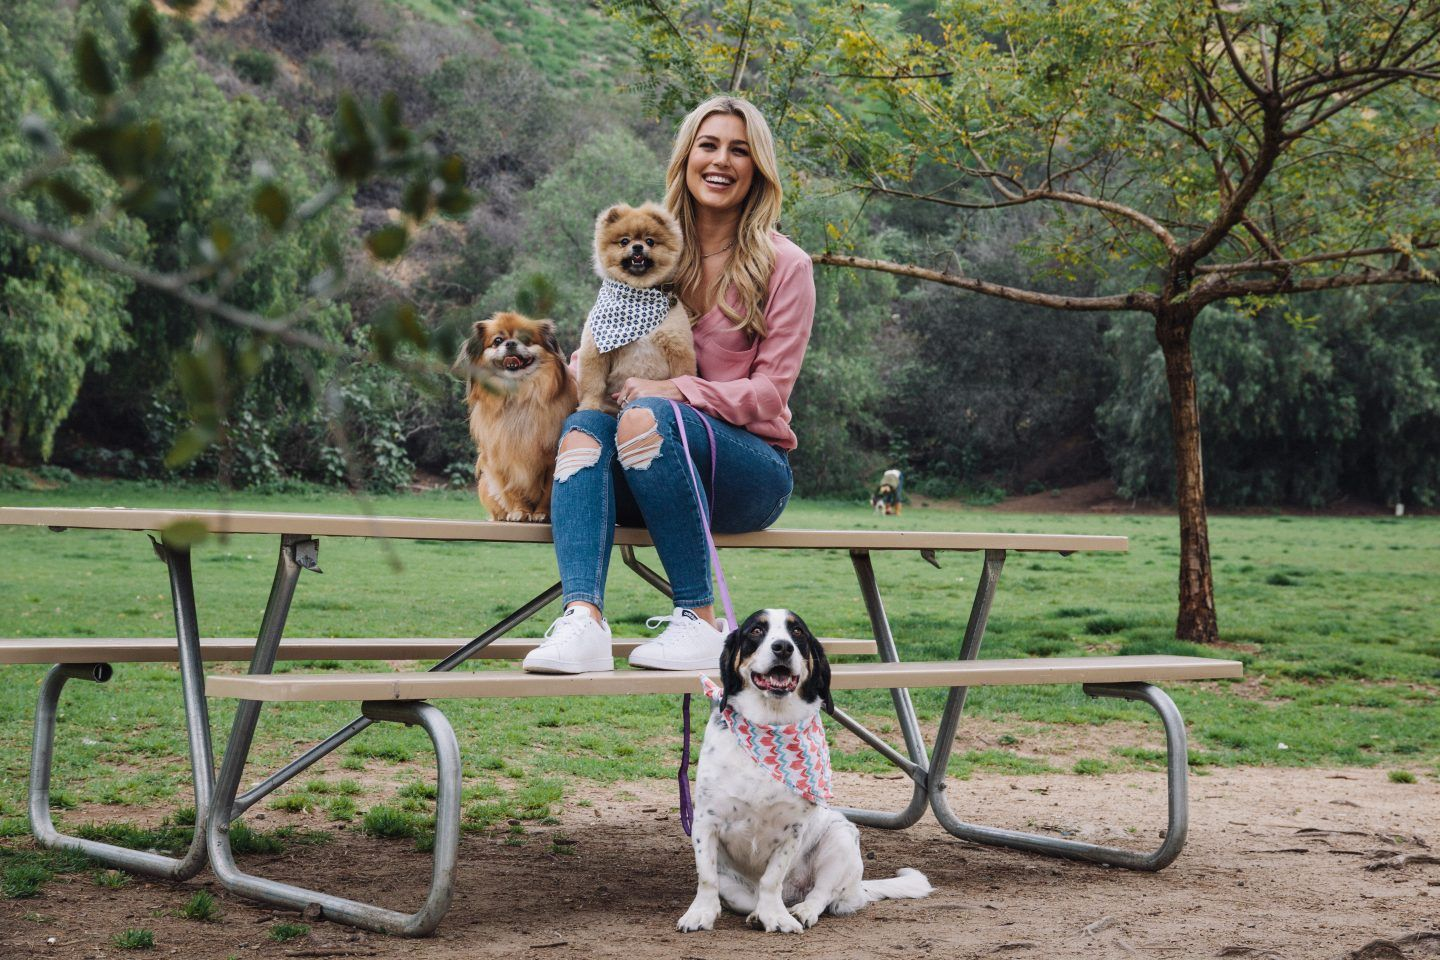 Carissa Culiner Cool pets, Pet owners, Doggy